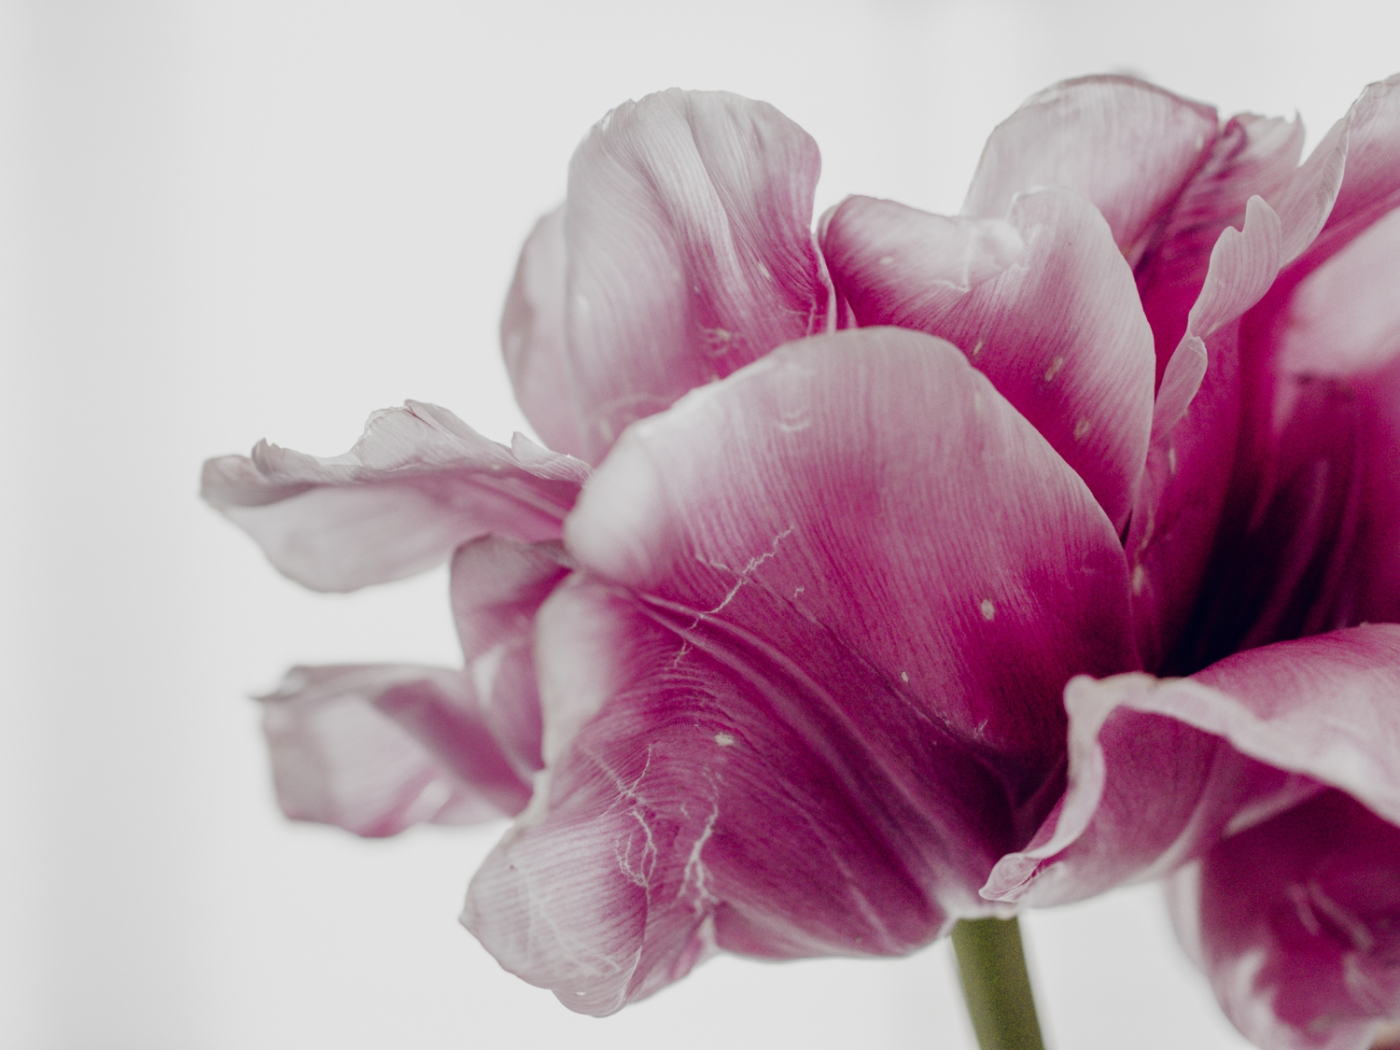 Tulips_Julianadorp-161